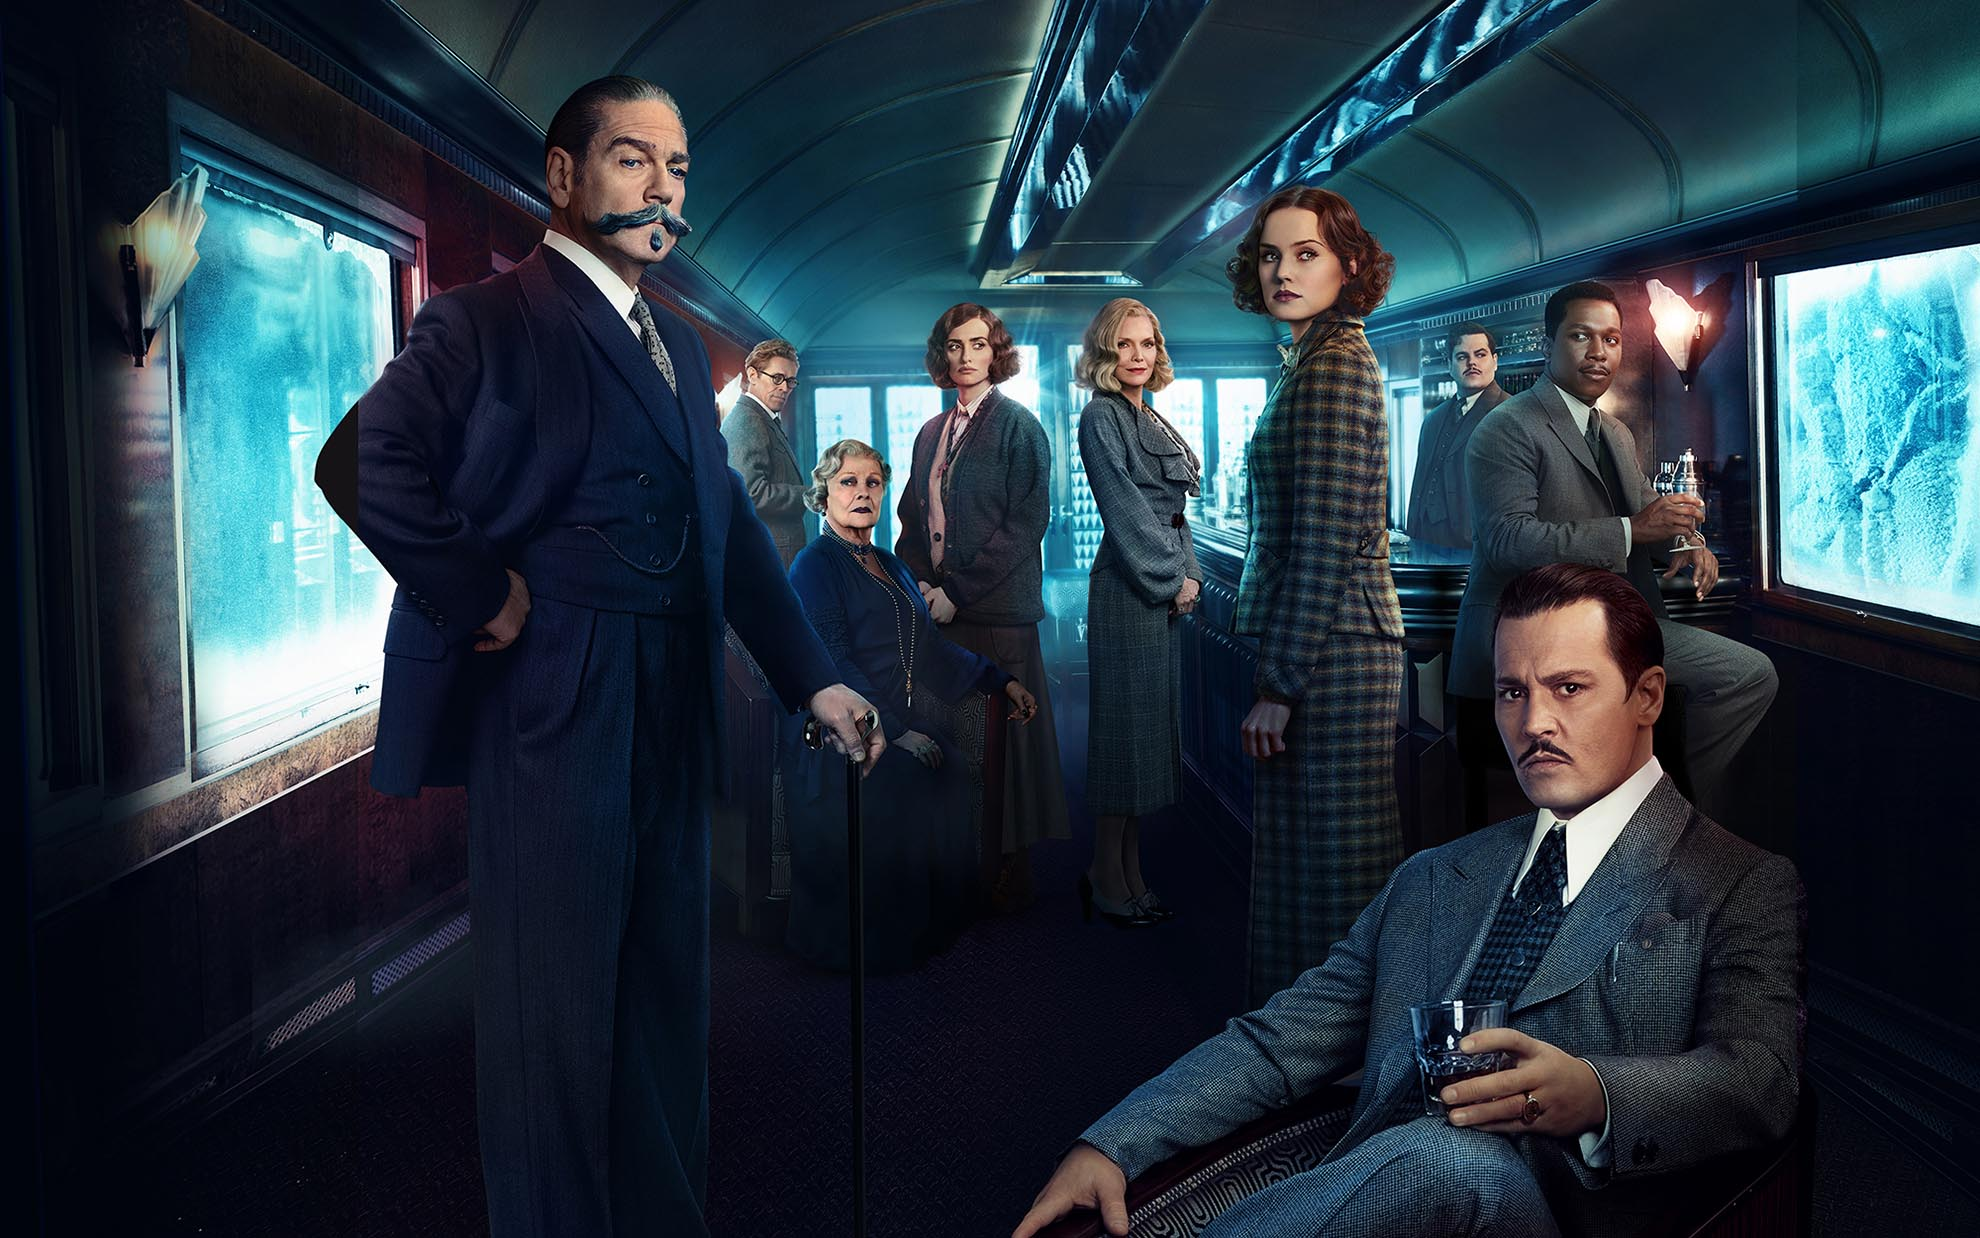 Kenneth Branagh's 'Murder on the Orient Express' has been primed for a sequel, starring Hercule Poirot again.